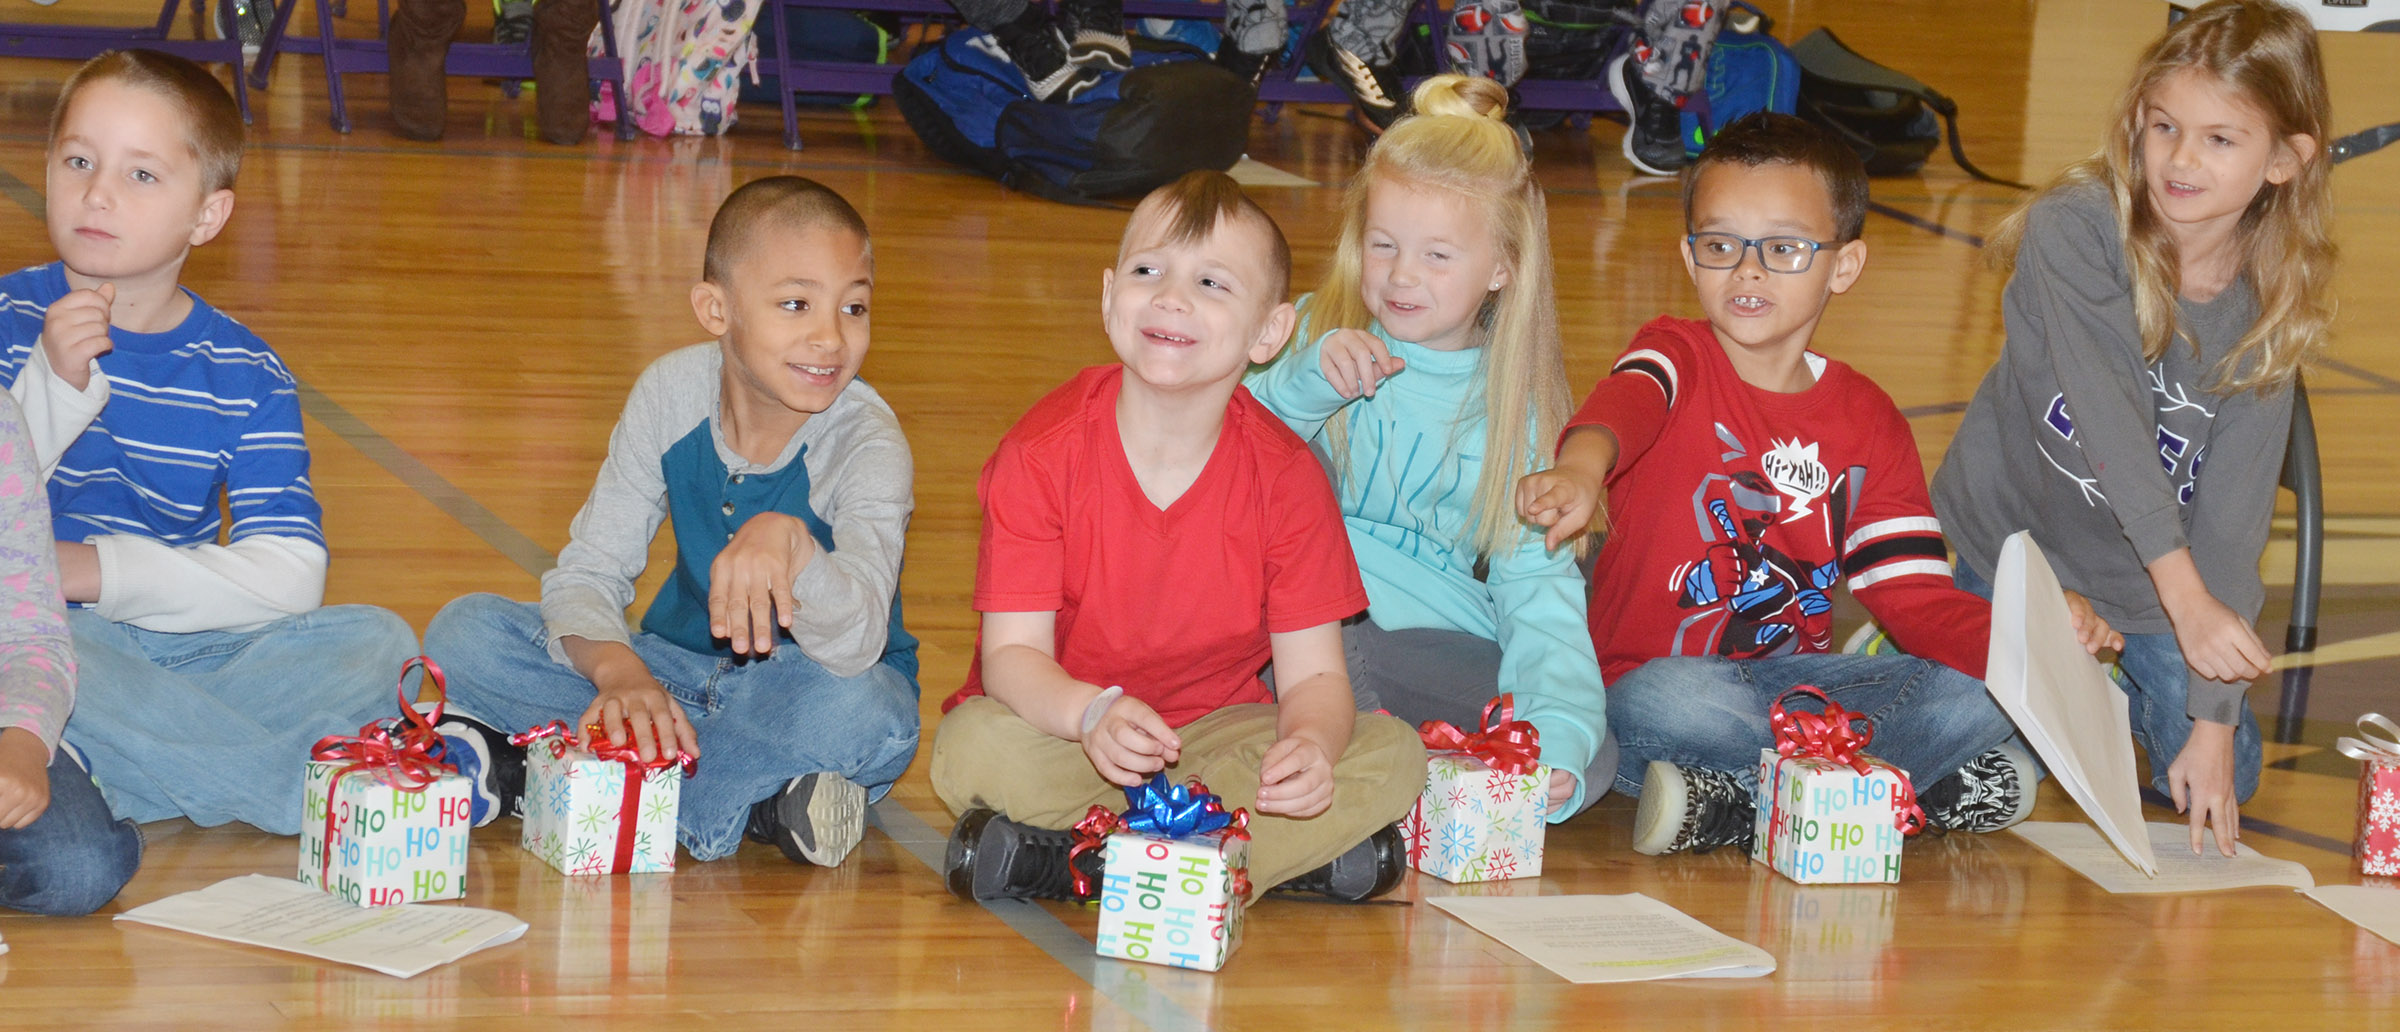 CES first-graders, from left, Kaiden Bradfield, Eli Williams, John Lane, Lillie Judd, Davian Taylor and Gracelyn Gebler laugh as they perform.